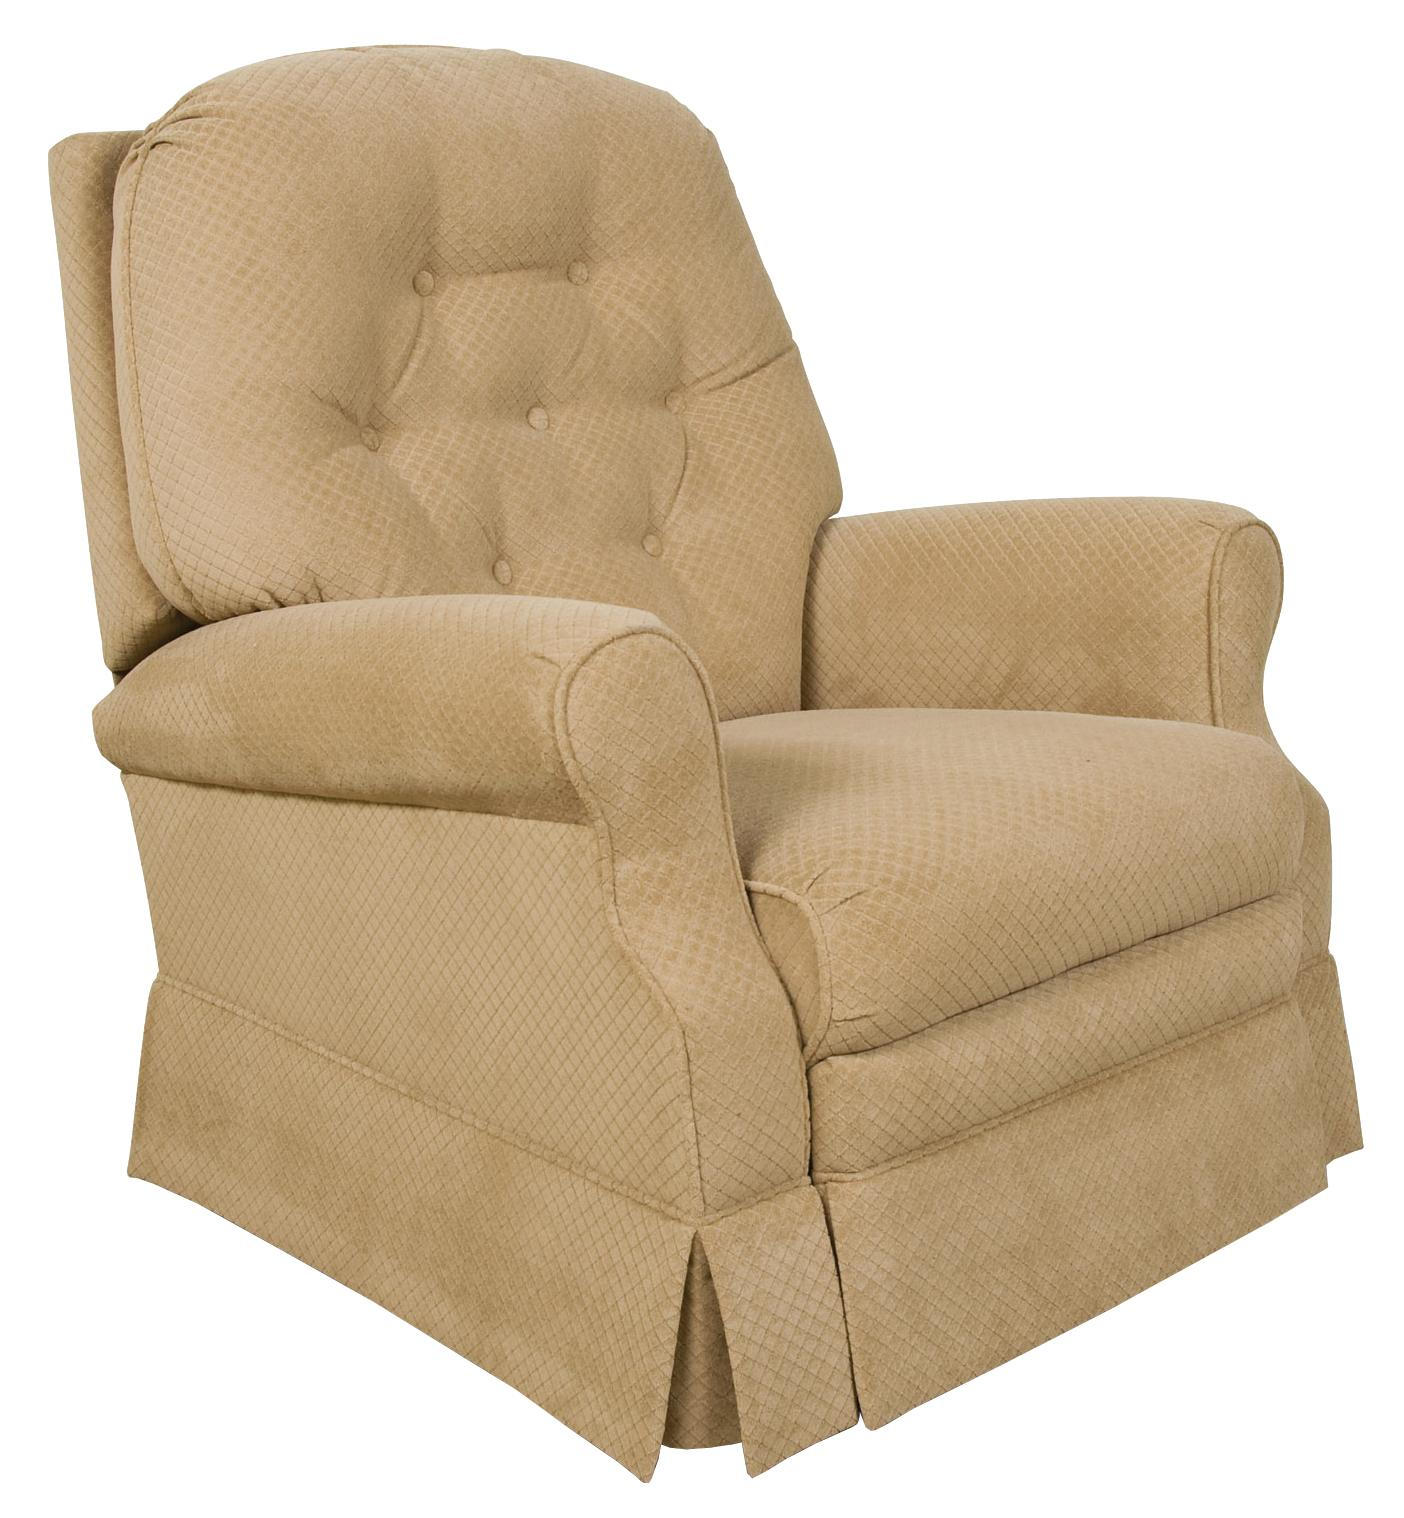 England Marisol Reclining Lift Chair - Item Number: 310-55